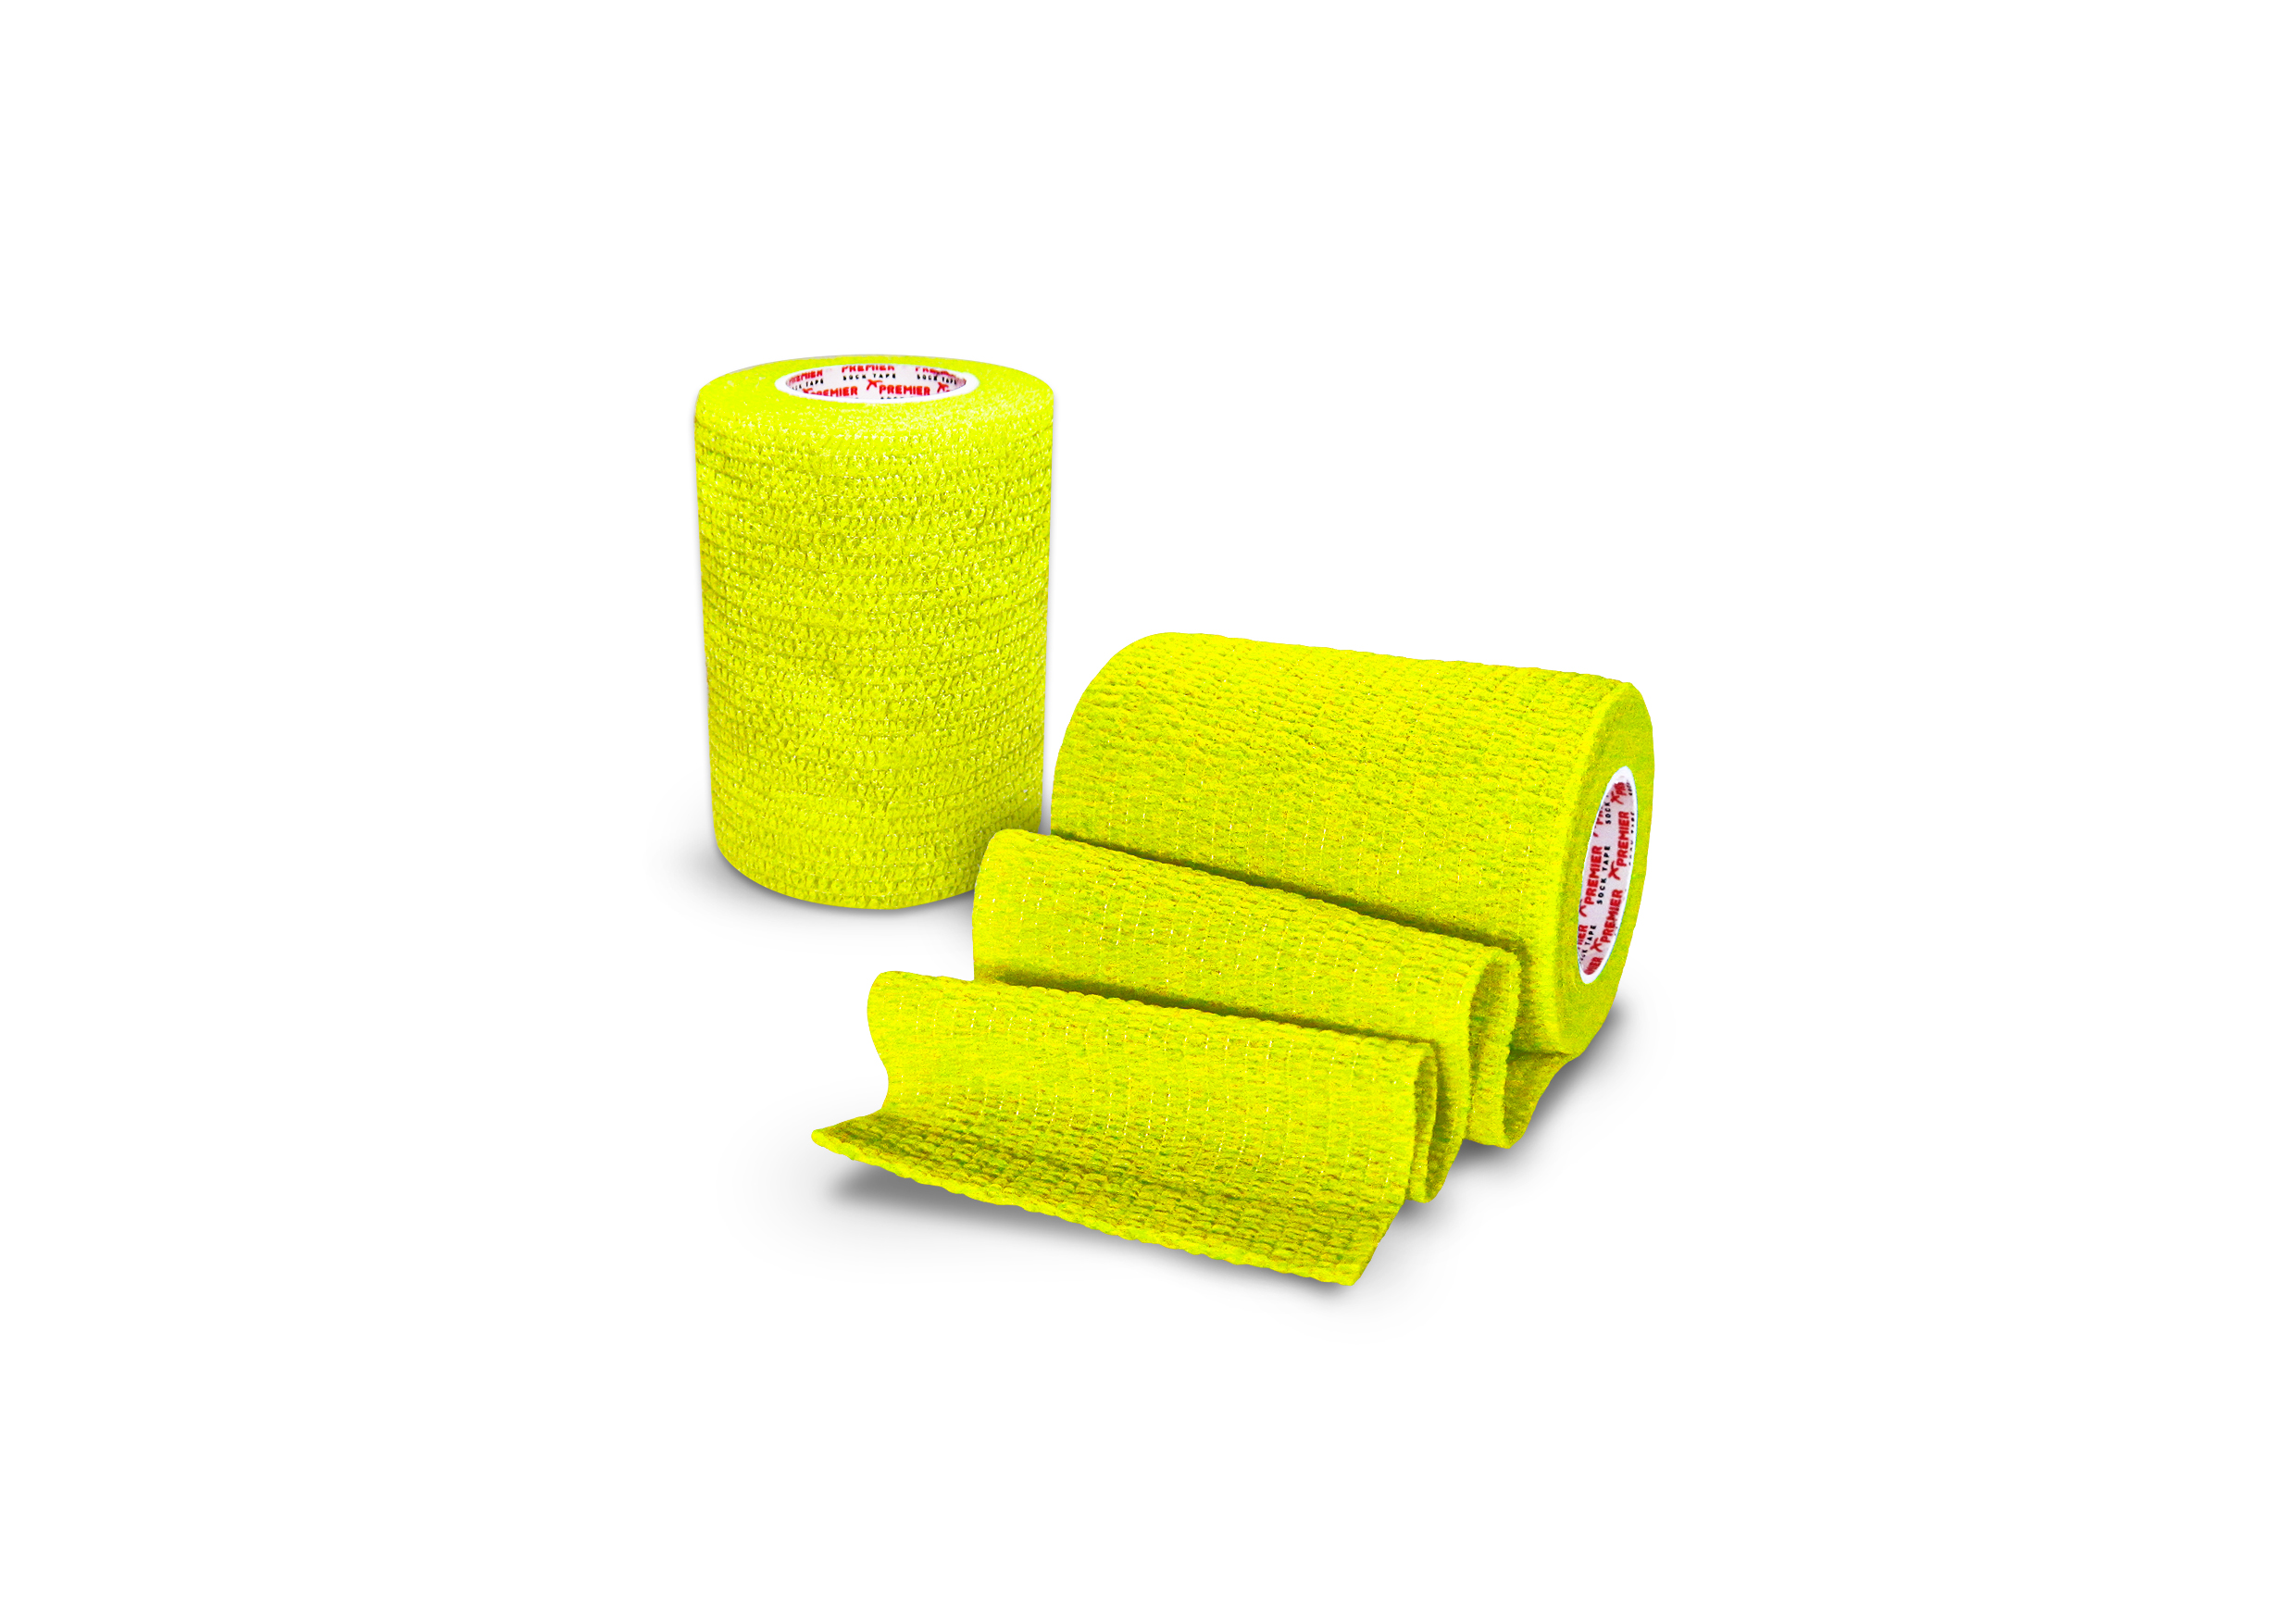 Premier Sock Tape 7.5cm Pro Wrap Neon Yellow